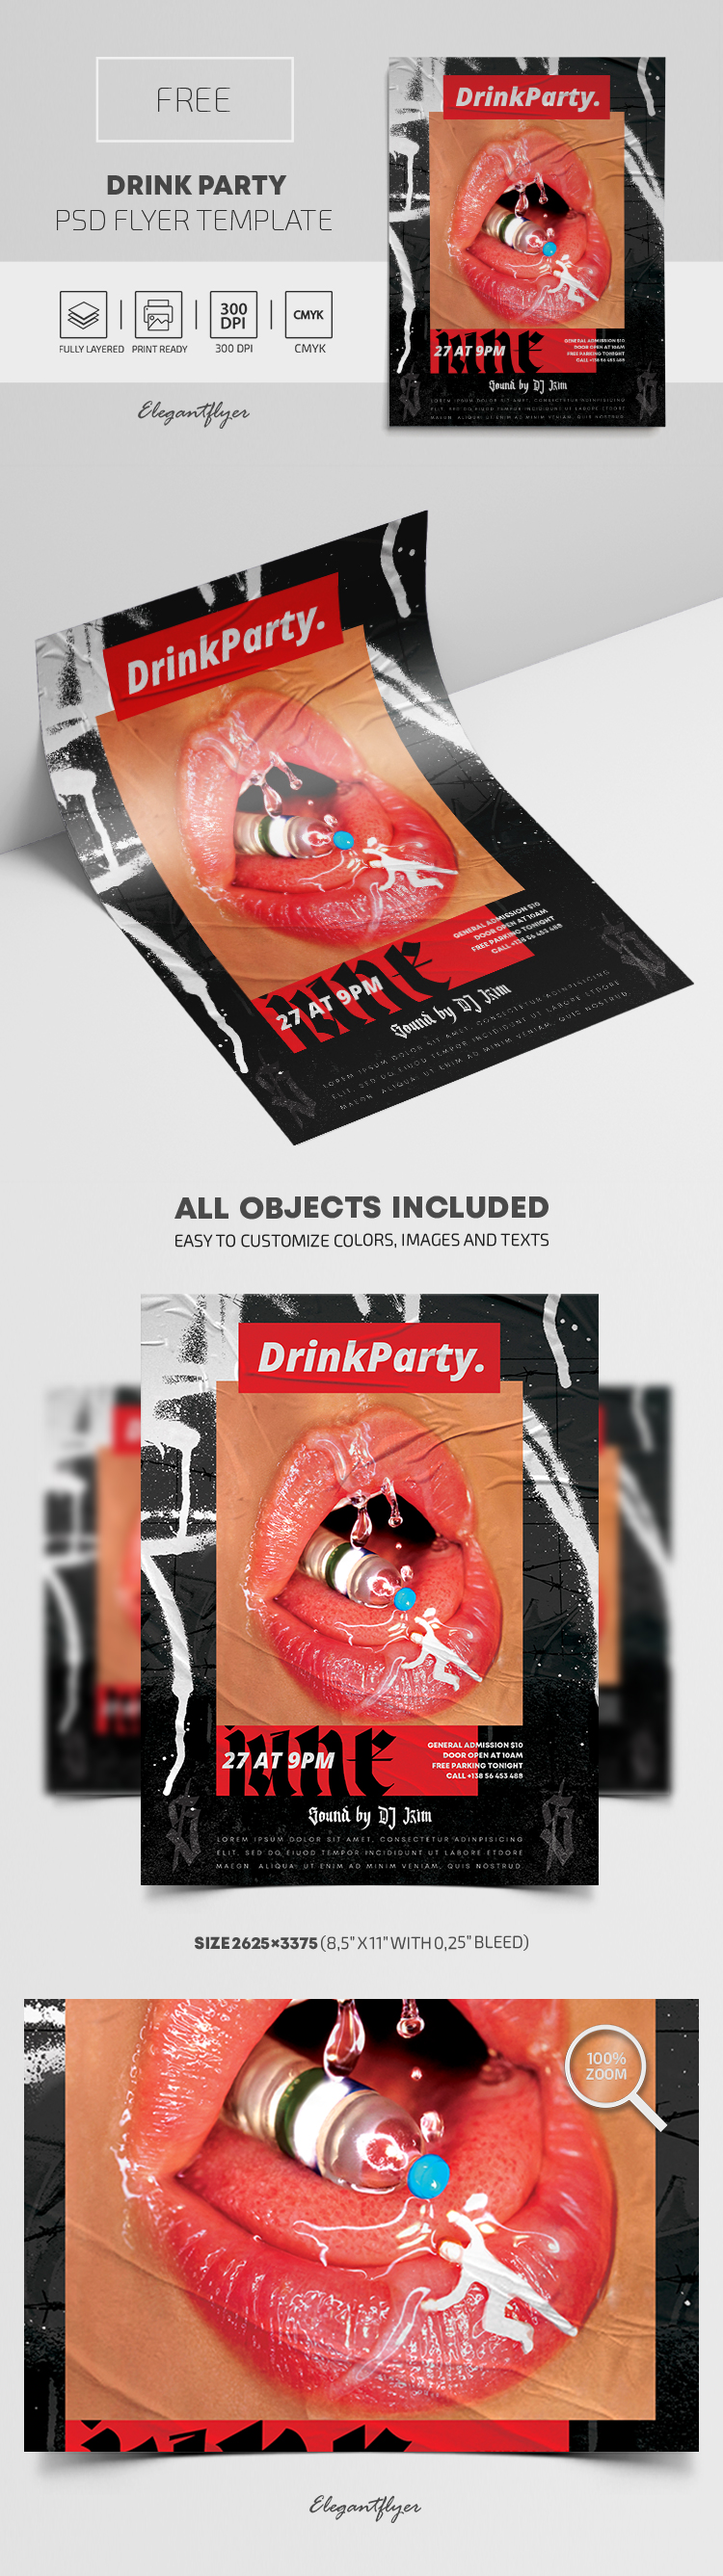 Drink Party – Free PSD Flyer Template